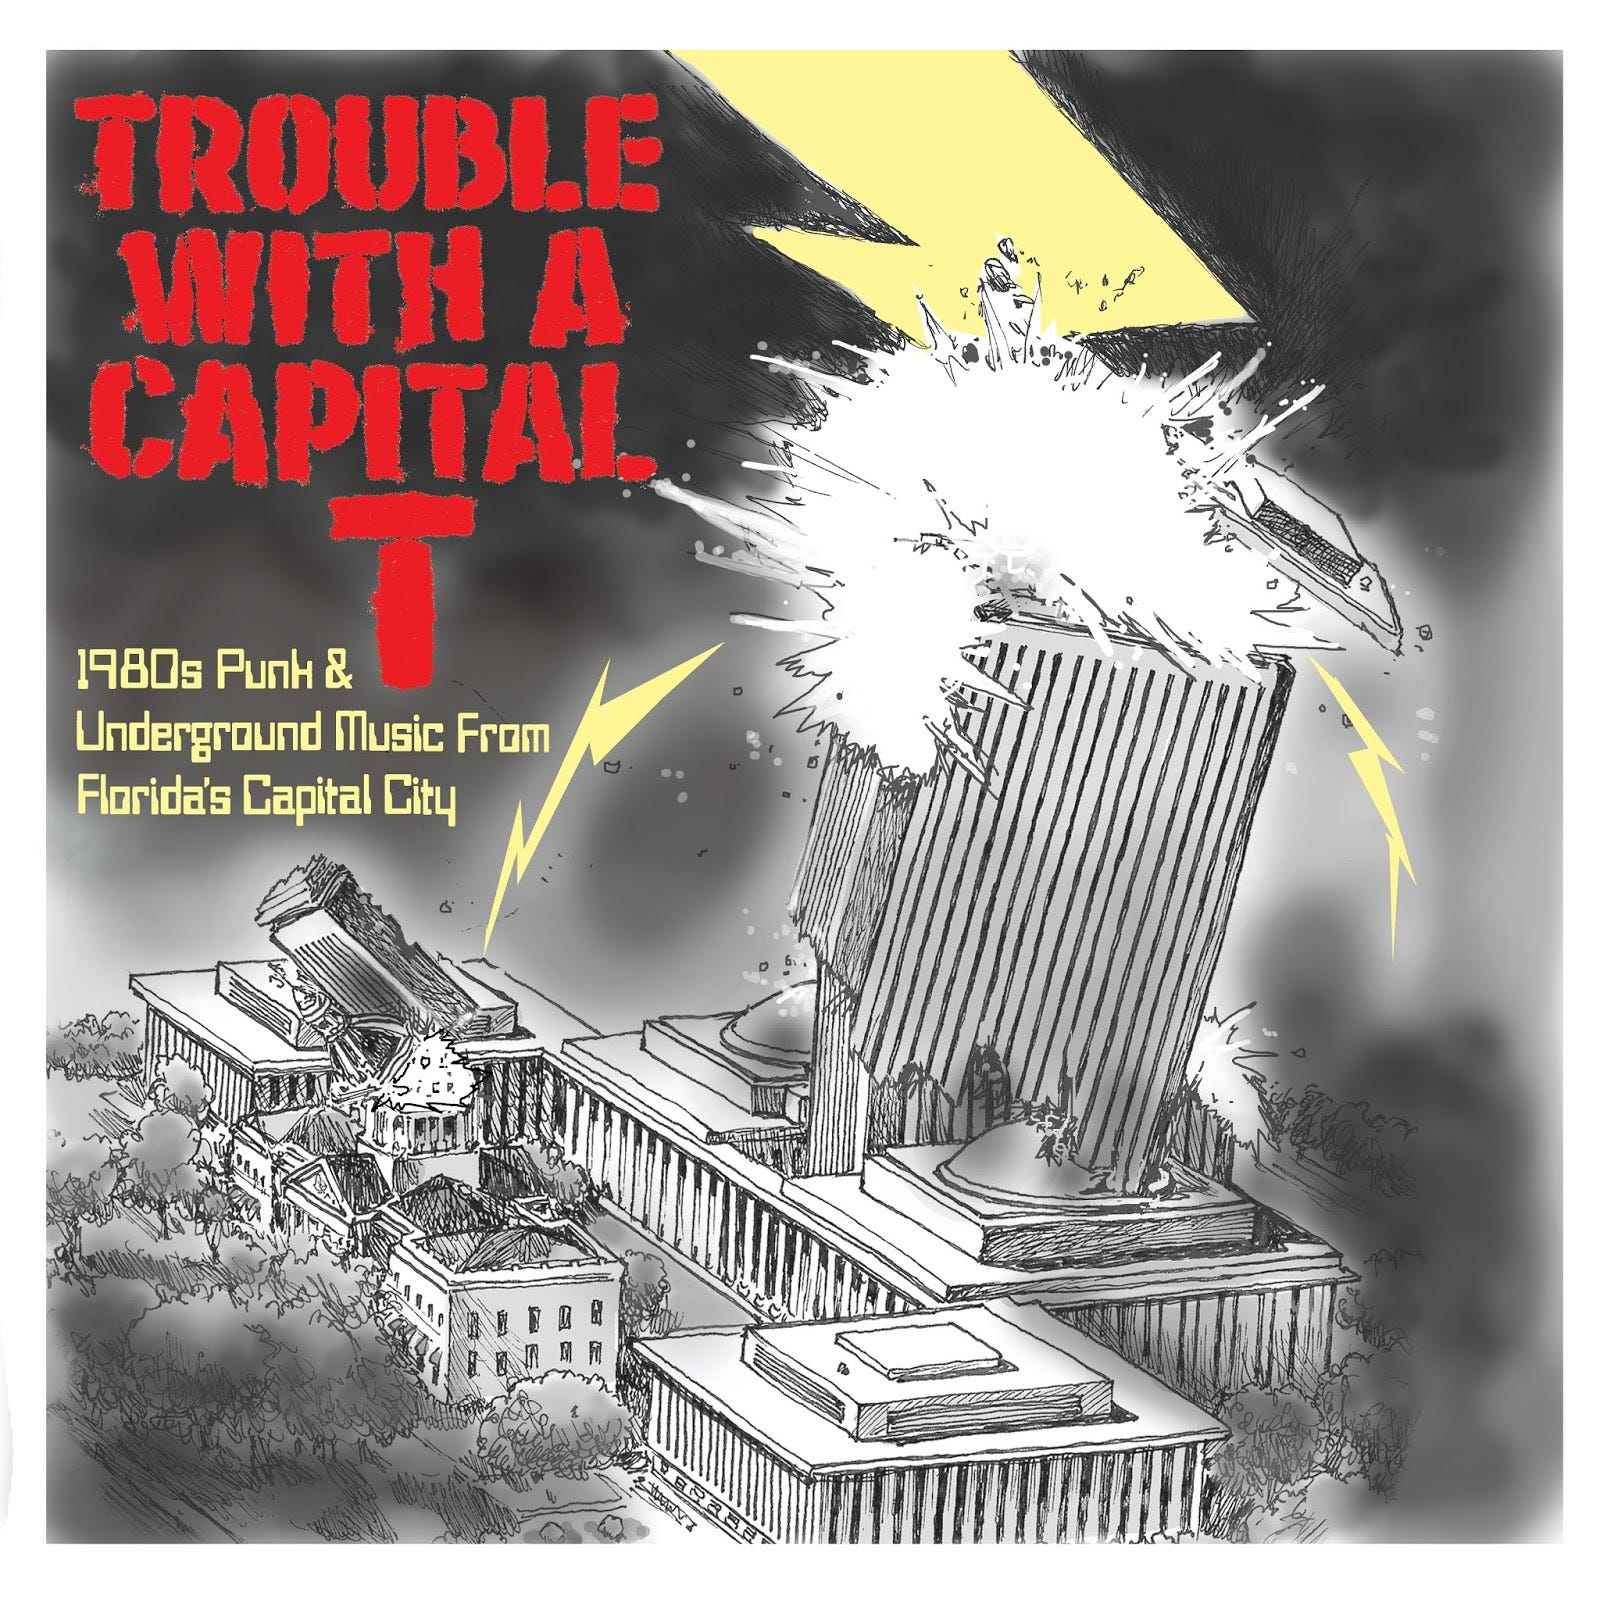 'Trouble With a Capital T' takes you back to Tallahassee's punk underground | Music Roundup